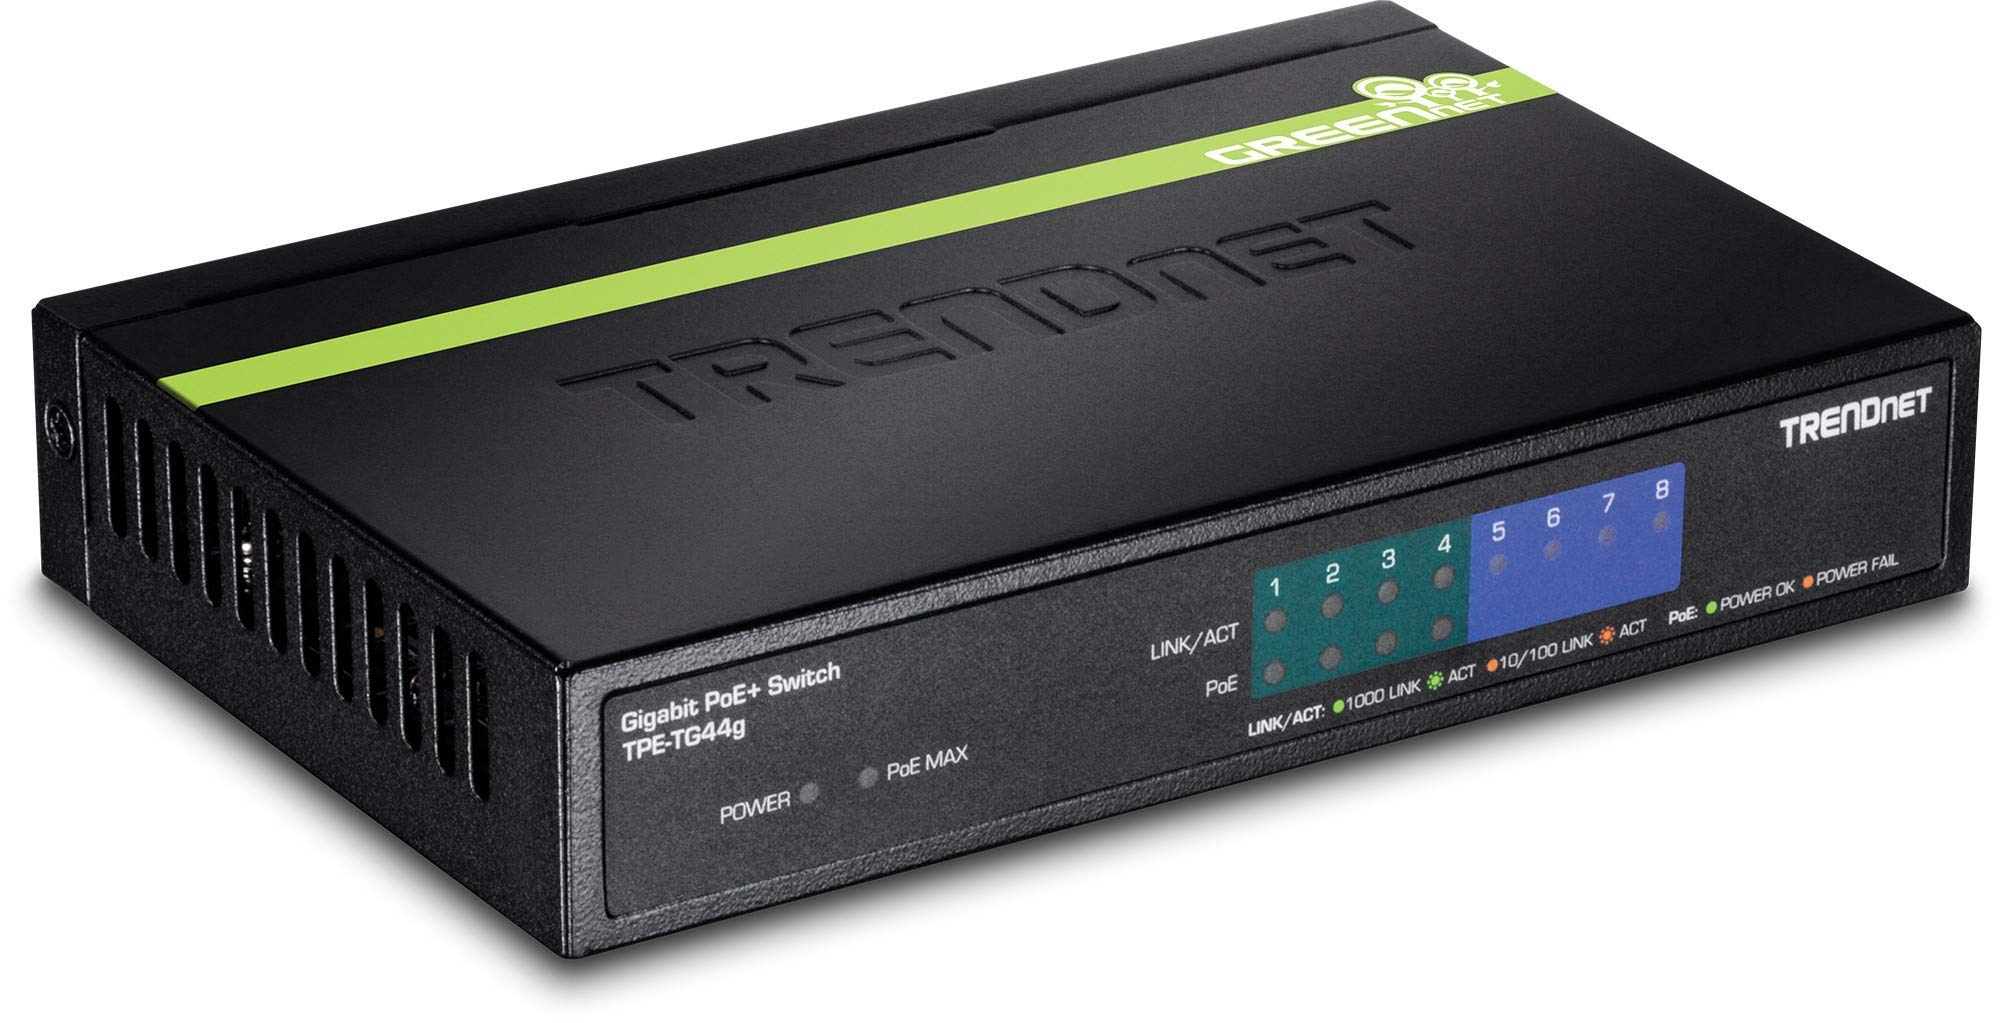 TRENDnet 6-Port Fast Ethernet PoE+ Switch, TPE-S50, 4 x Fast Ethernet PoE+ Ports, 2 x Fast Ethernet Ports, 60W PoE Budget, 1.2 Gbps Switch Capacity, Ethernet Network Switch, Metal, Lifetime Protection by TRENDnet